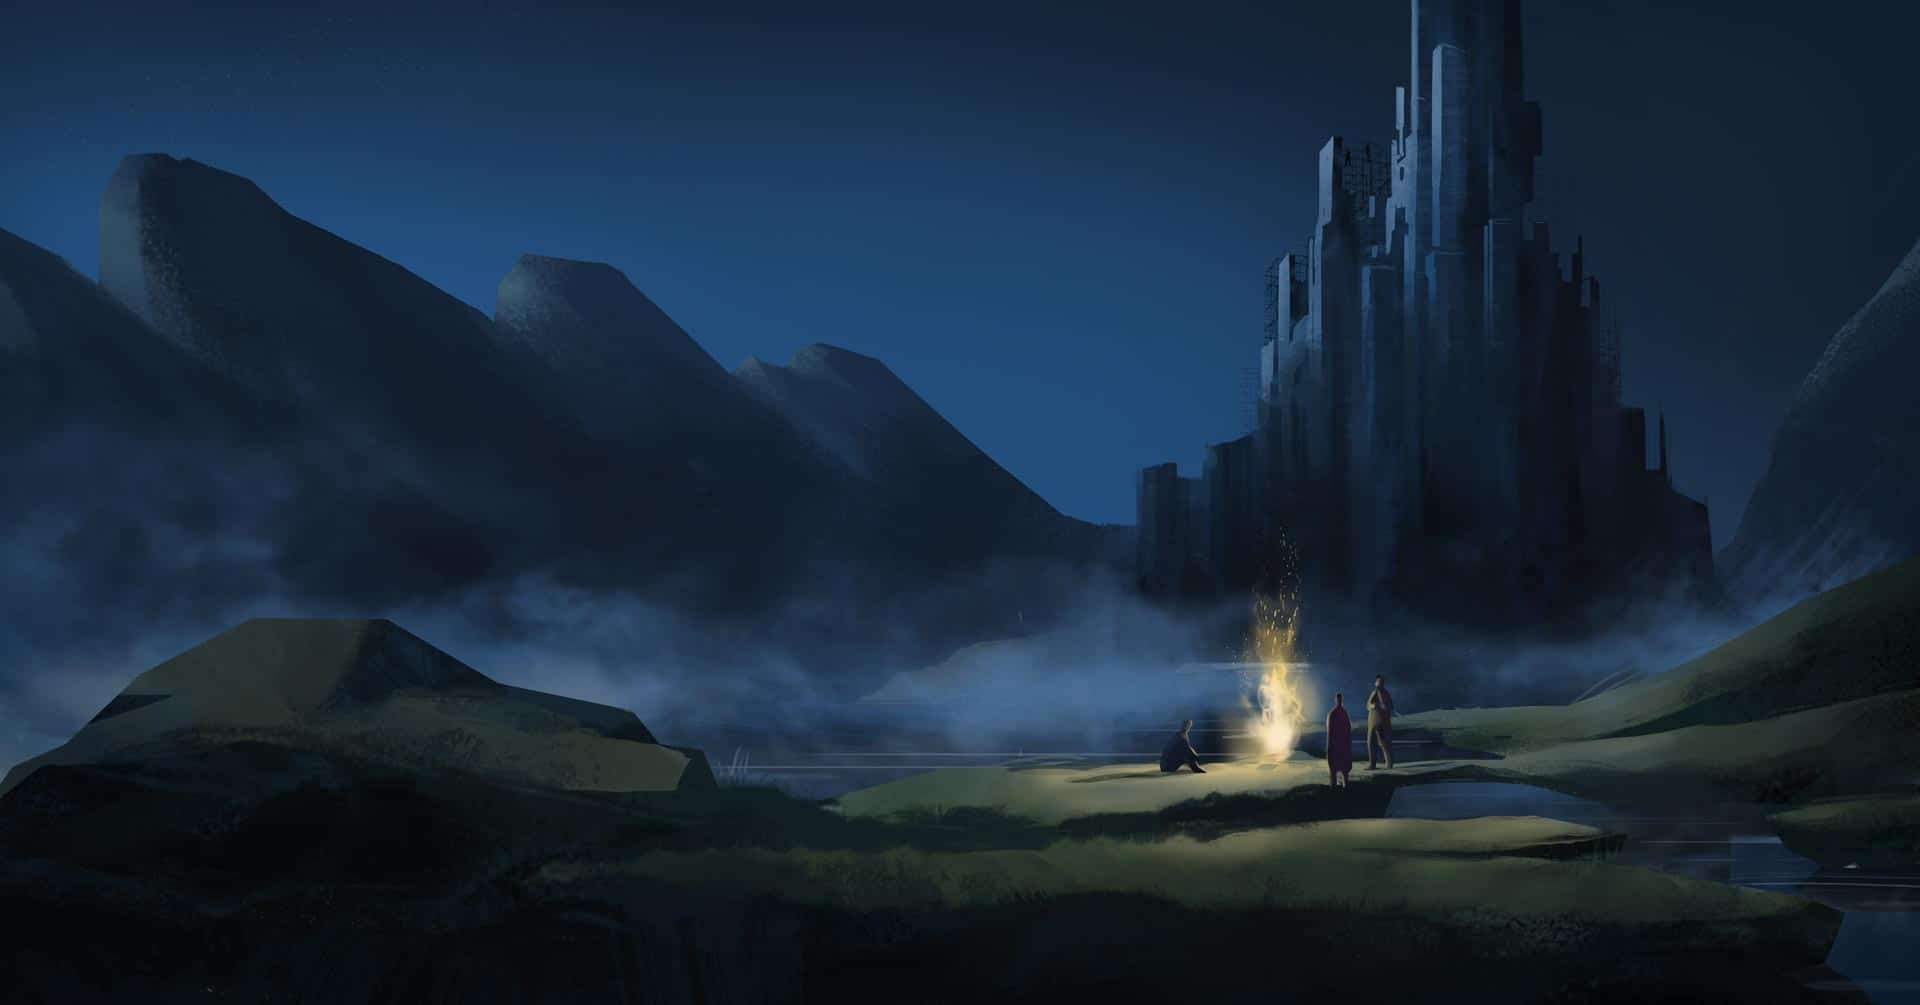 The Embers - epic fortress under construction during at night illustration for Campfire Agency by Jakub Cichecki